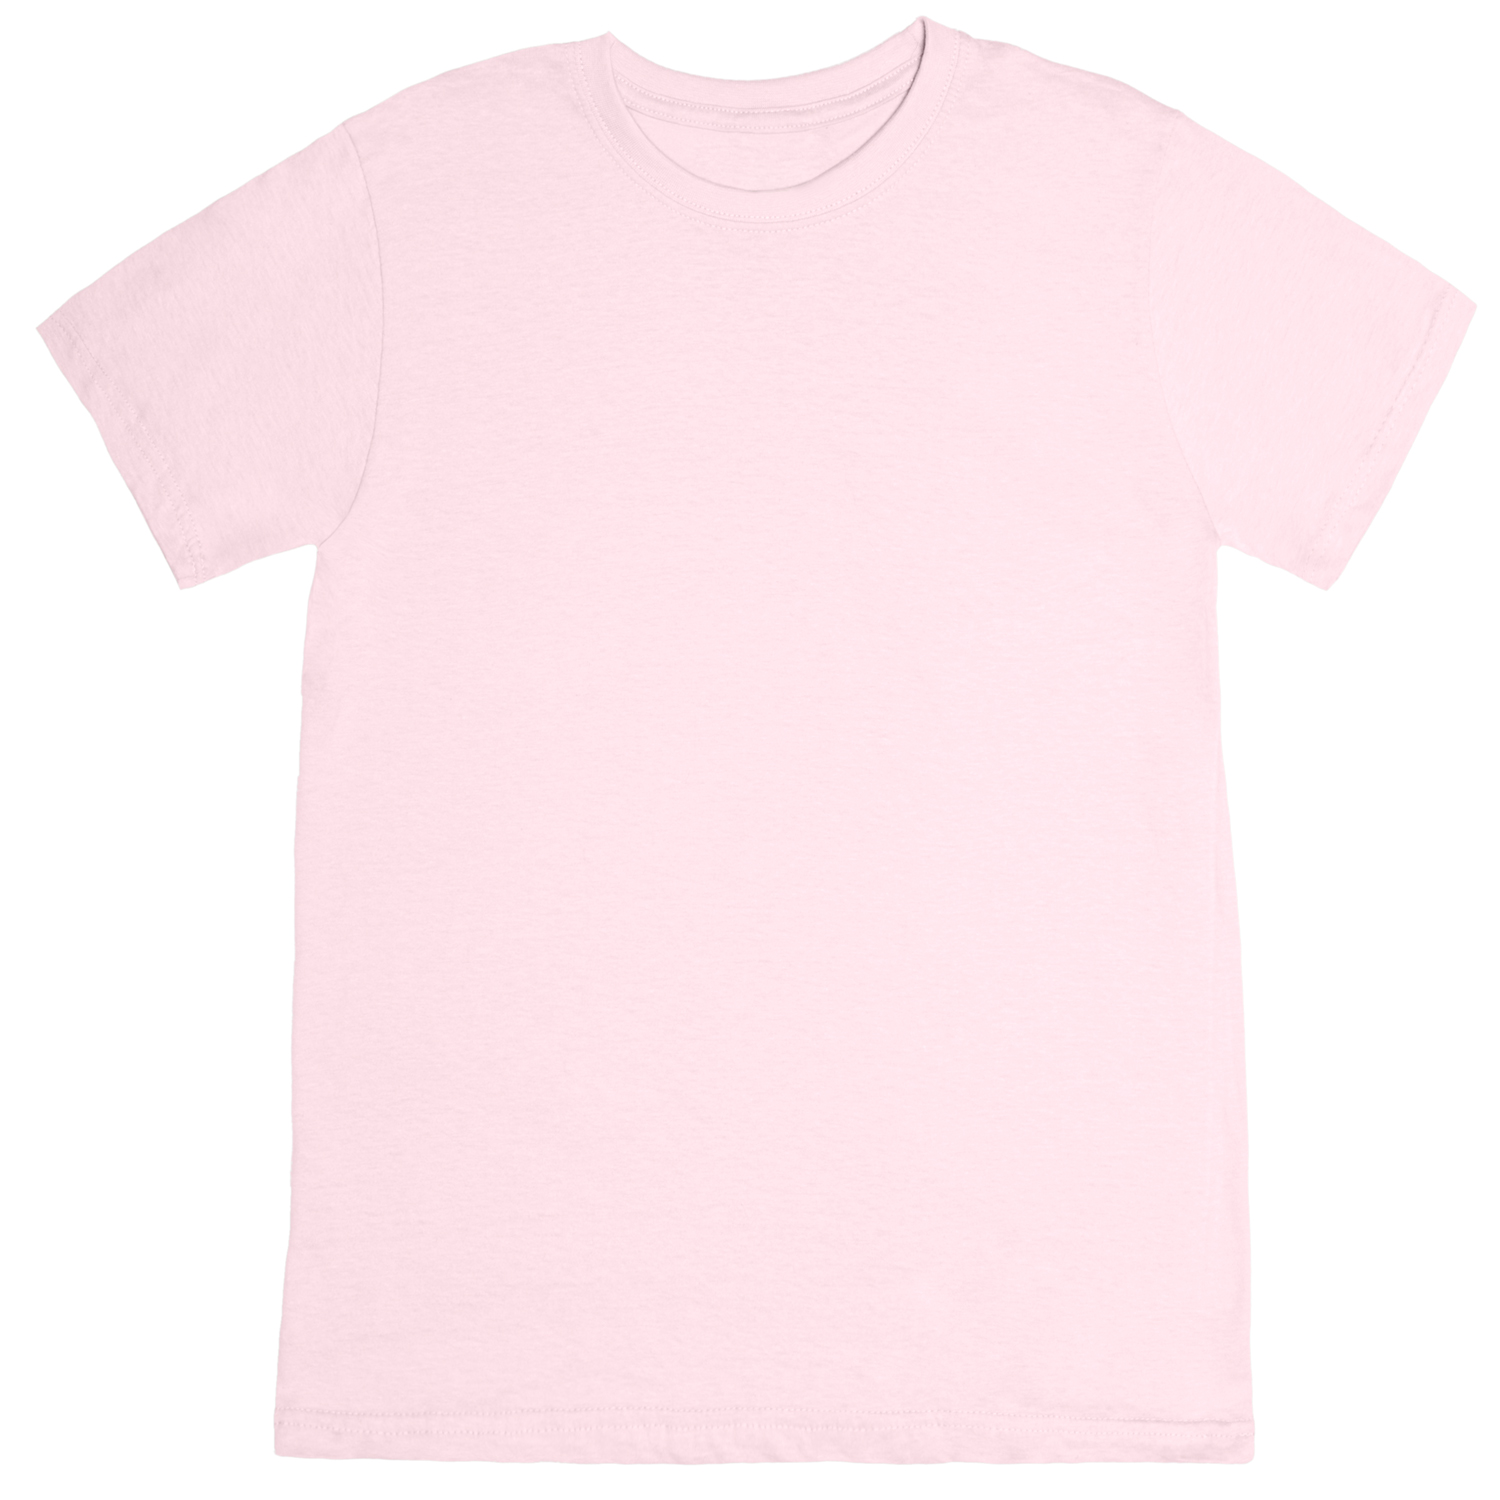 Light Pink – PMS 698 C  *Available in WC150 and YC150 only